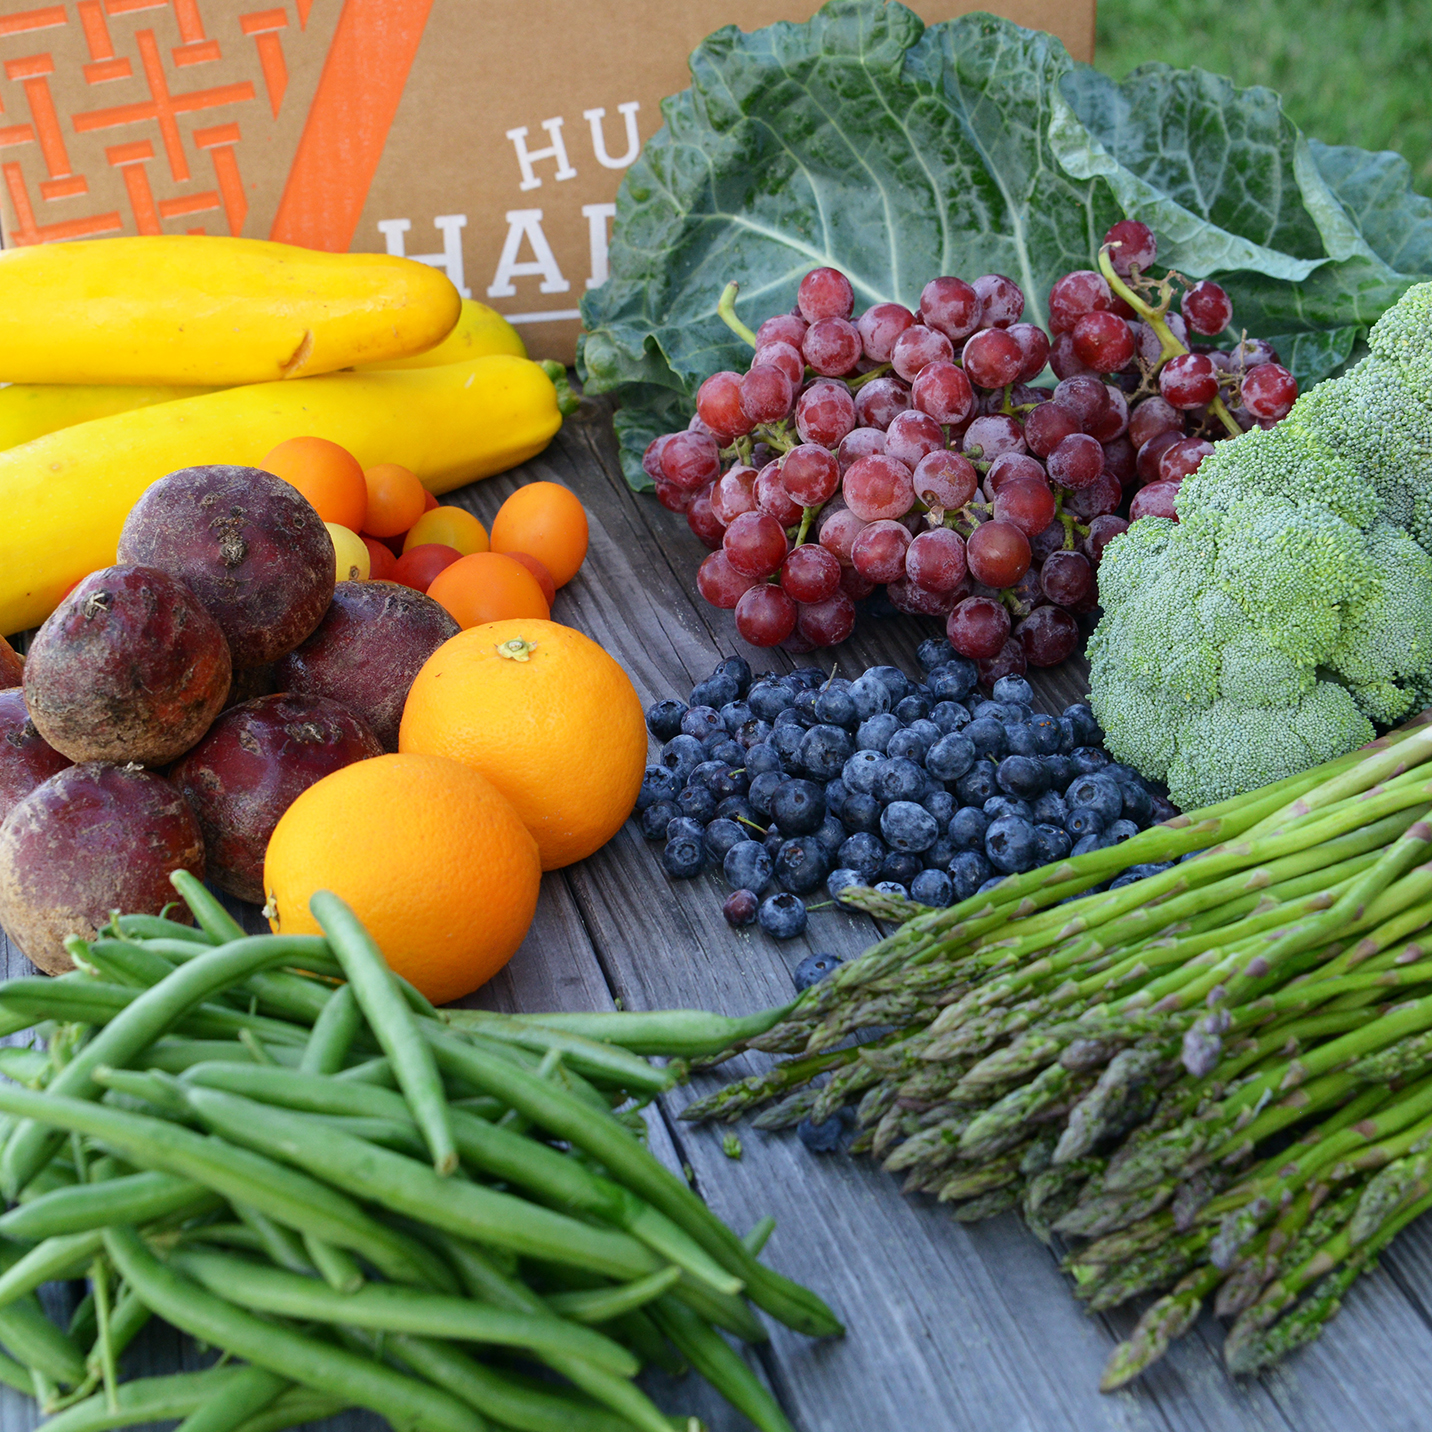 Recipe Ideas for Your Harvests